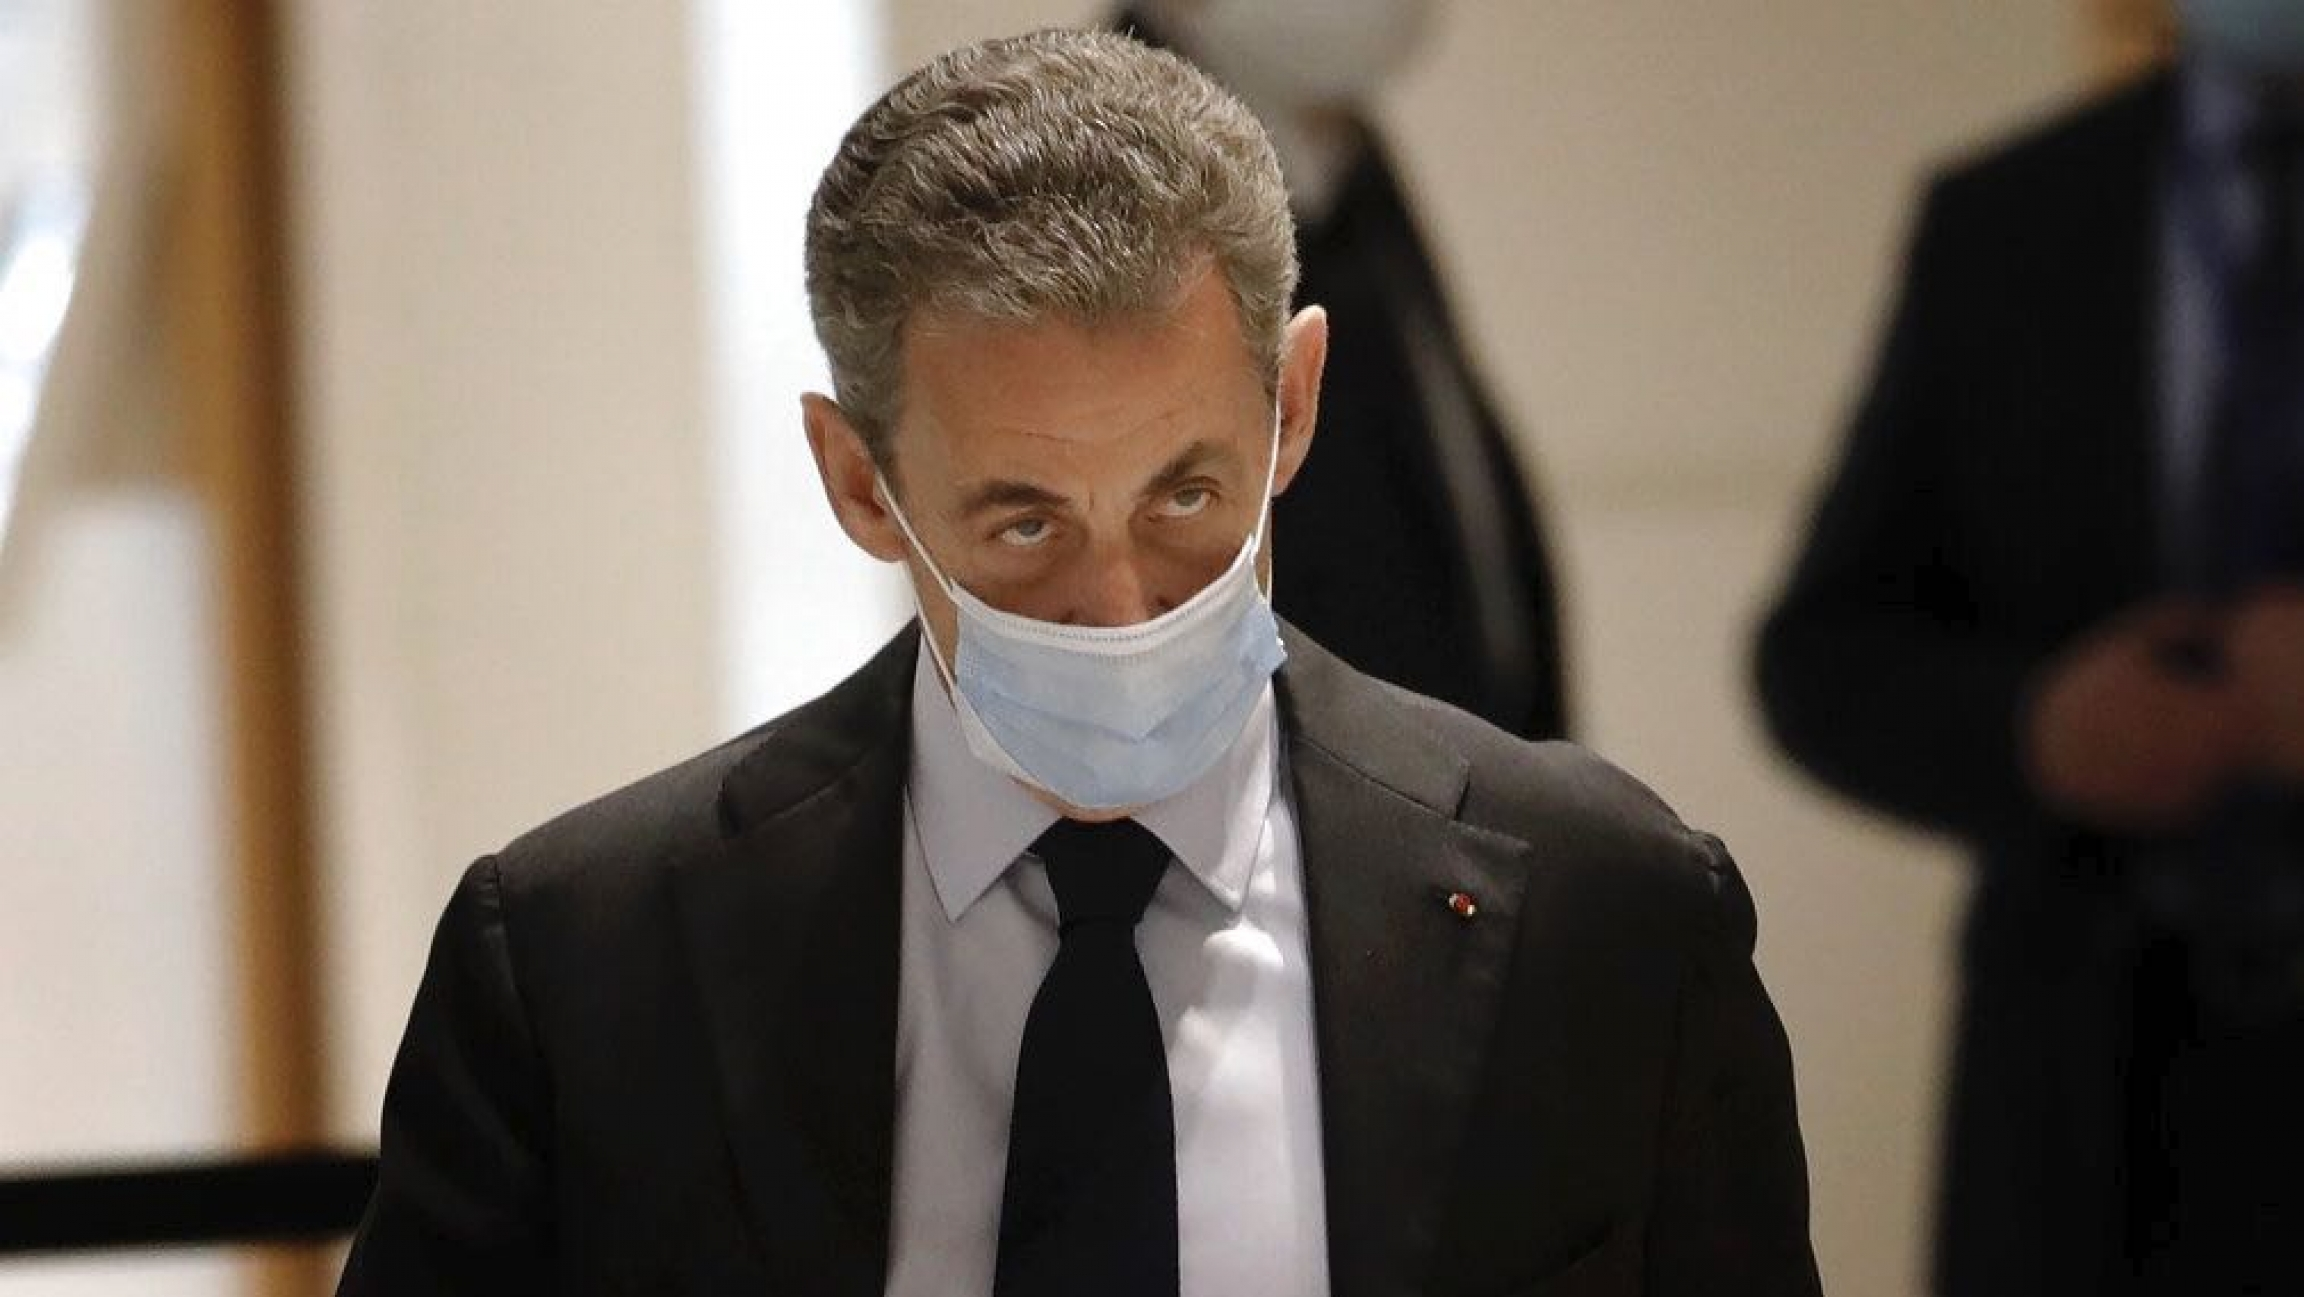 Former French President Nicolas Sarkozy arrives at the courtroom Monday, Nov. 30, 2020, in Paris.